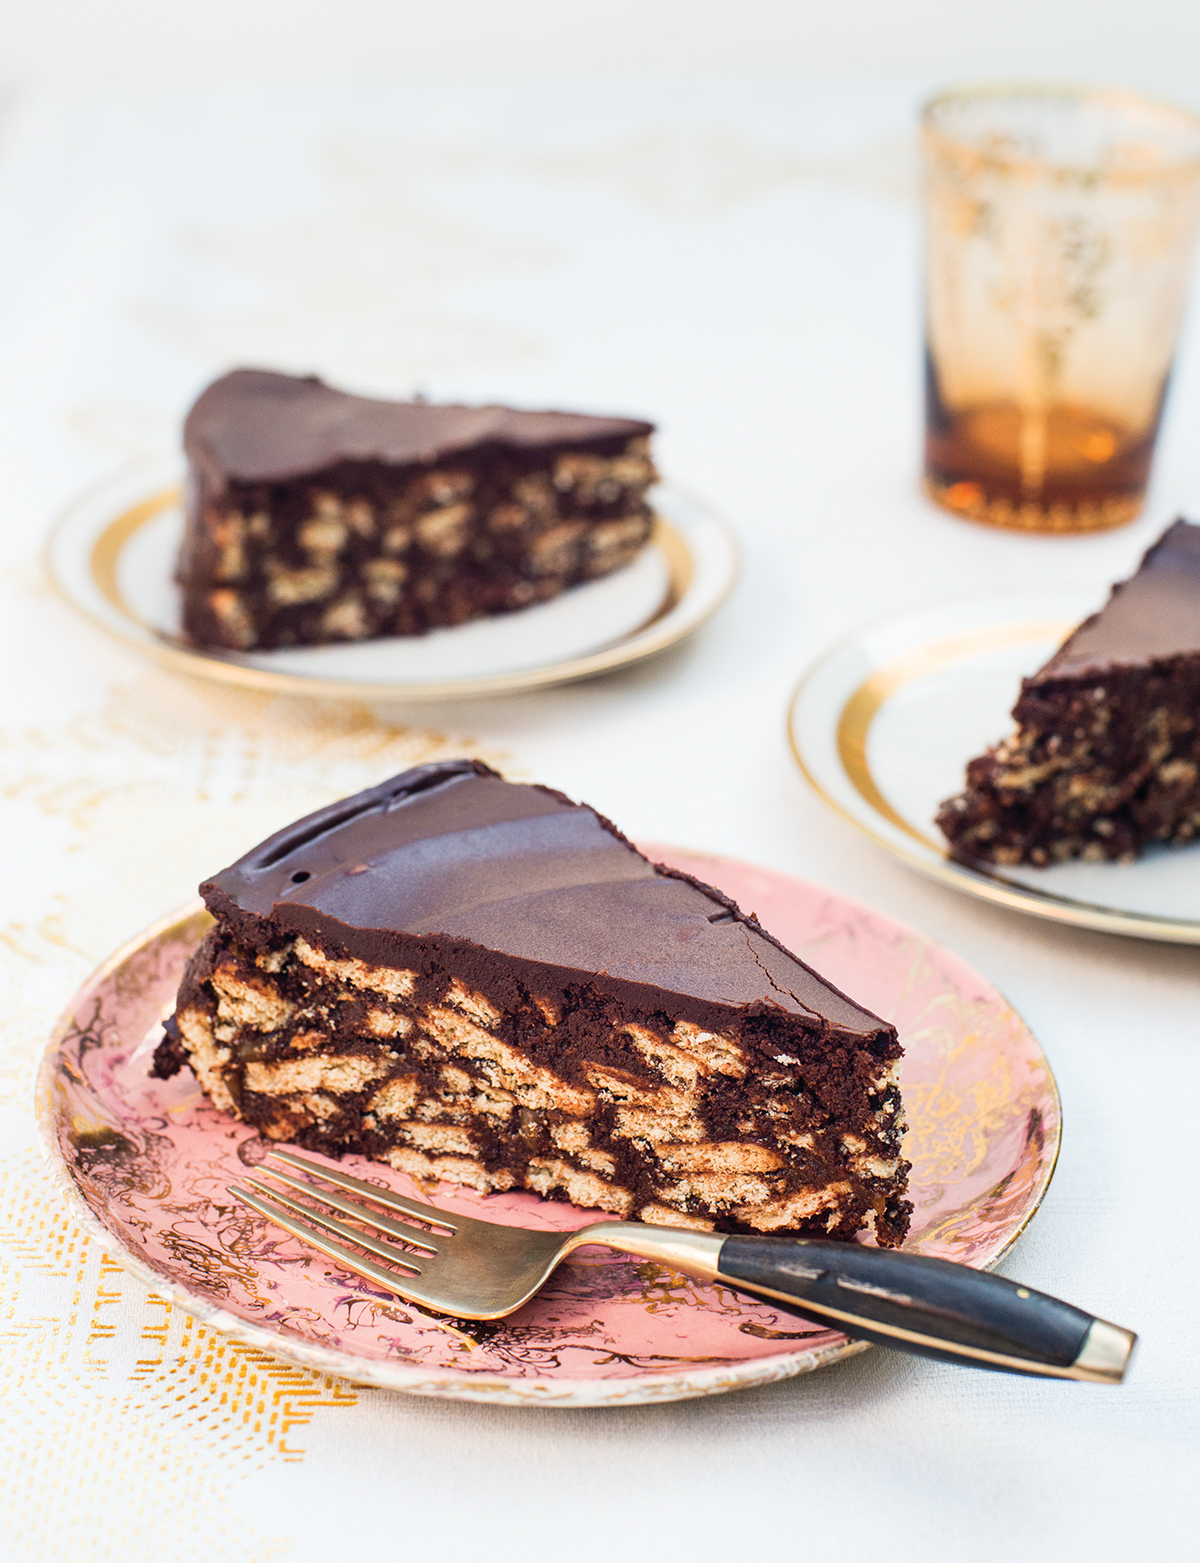 Sunday Recipe: A No-Bake Chocolate Cake Fit for a Prince